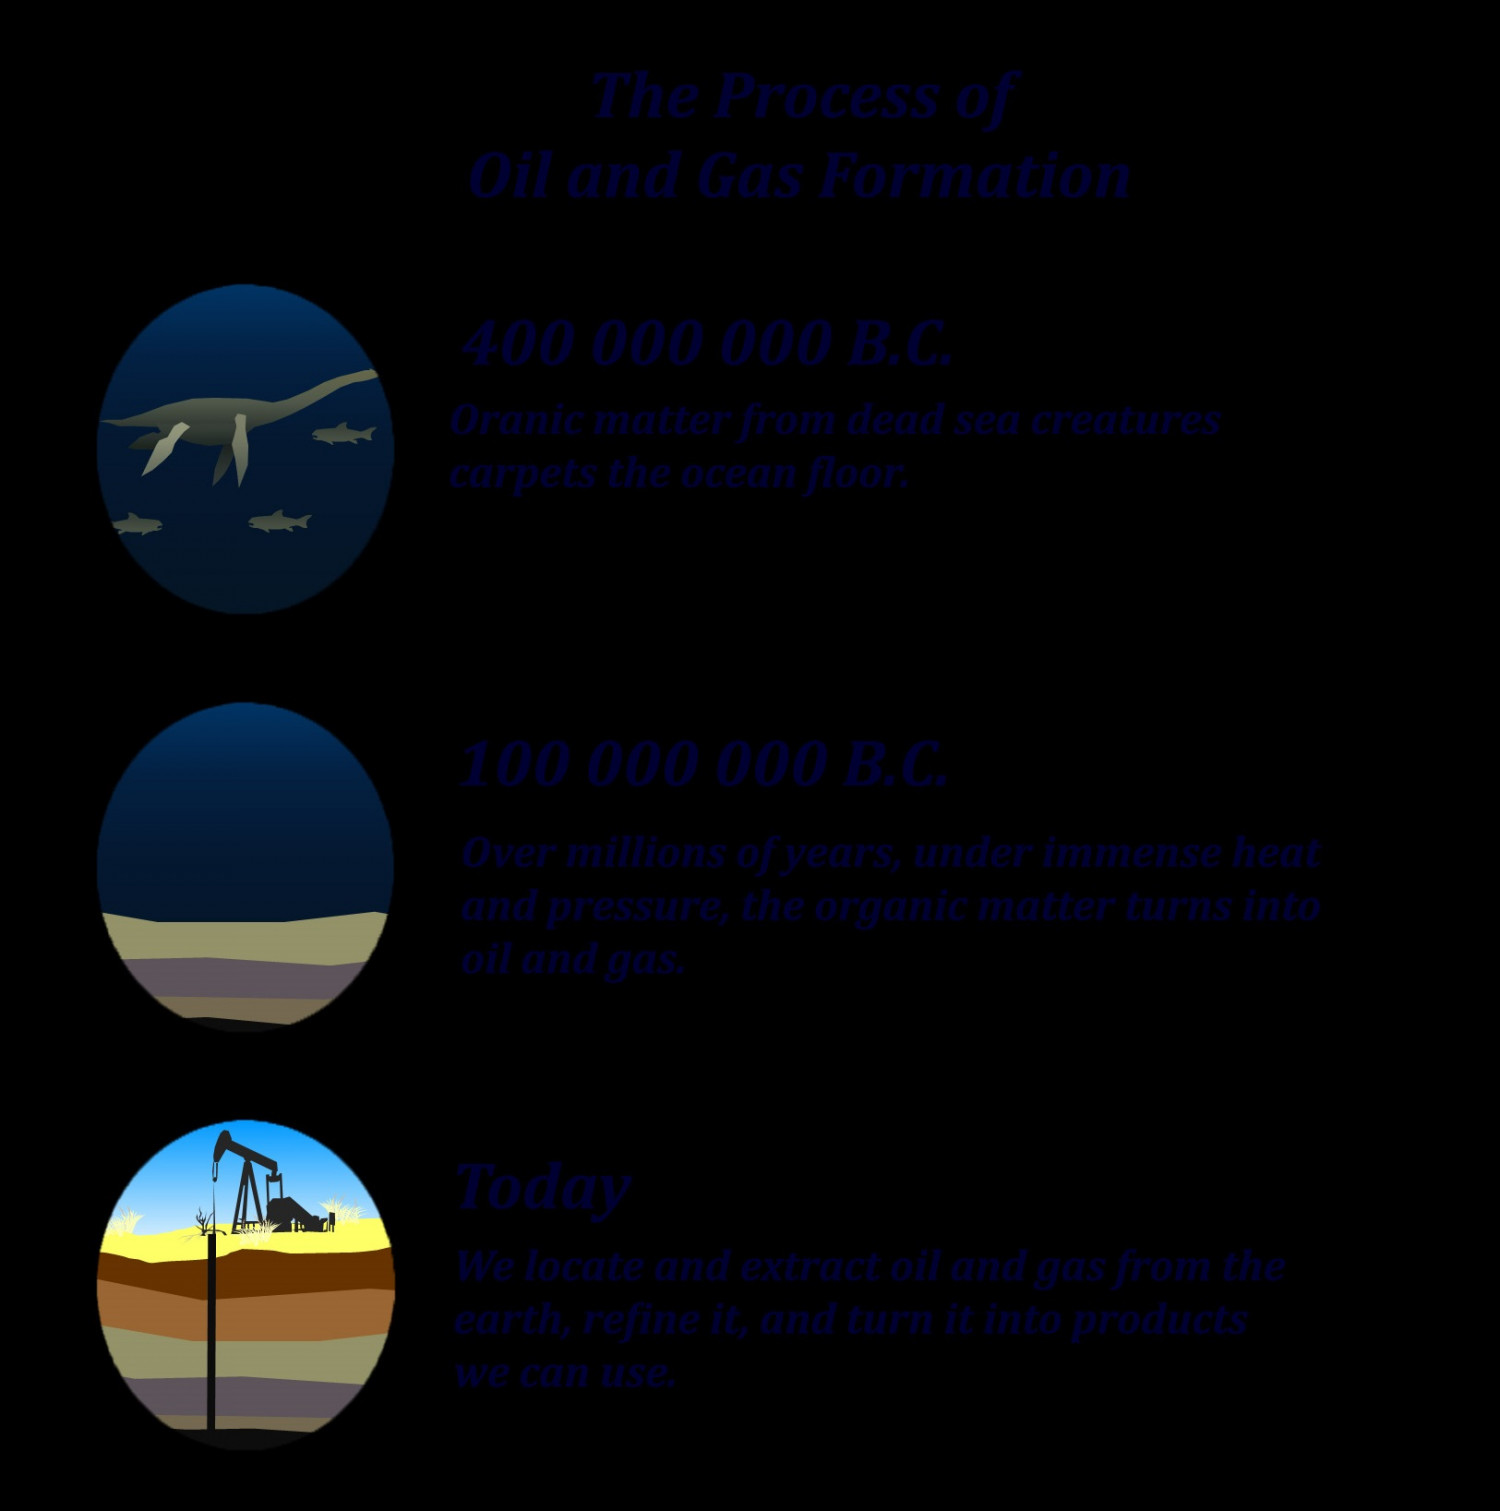 The Process of Oil and Gas Formation Infographic